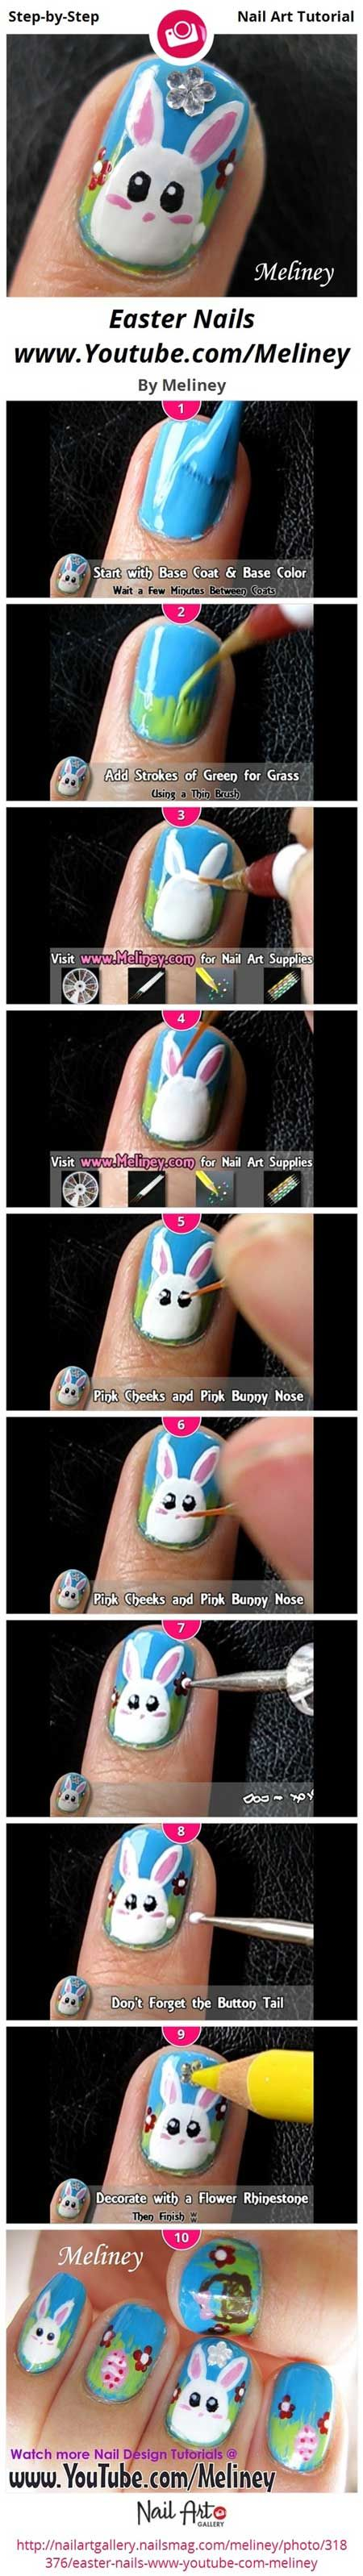 Easter Nails - Step-by-Step Tutorial